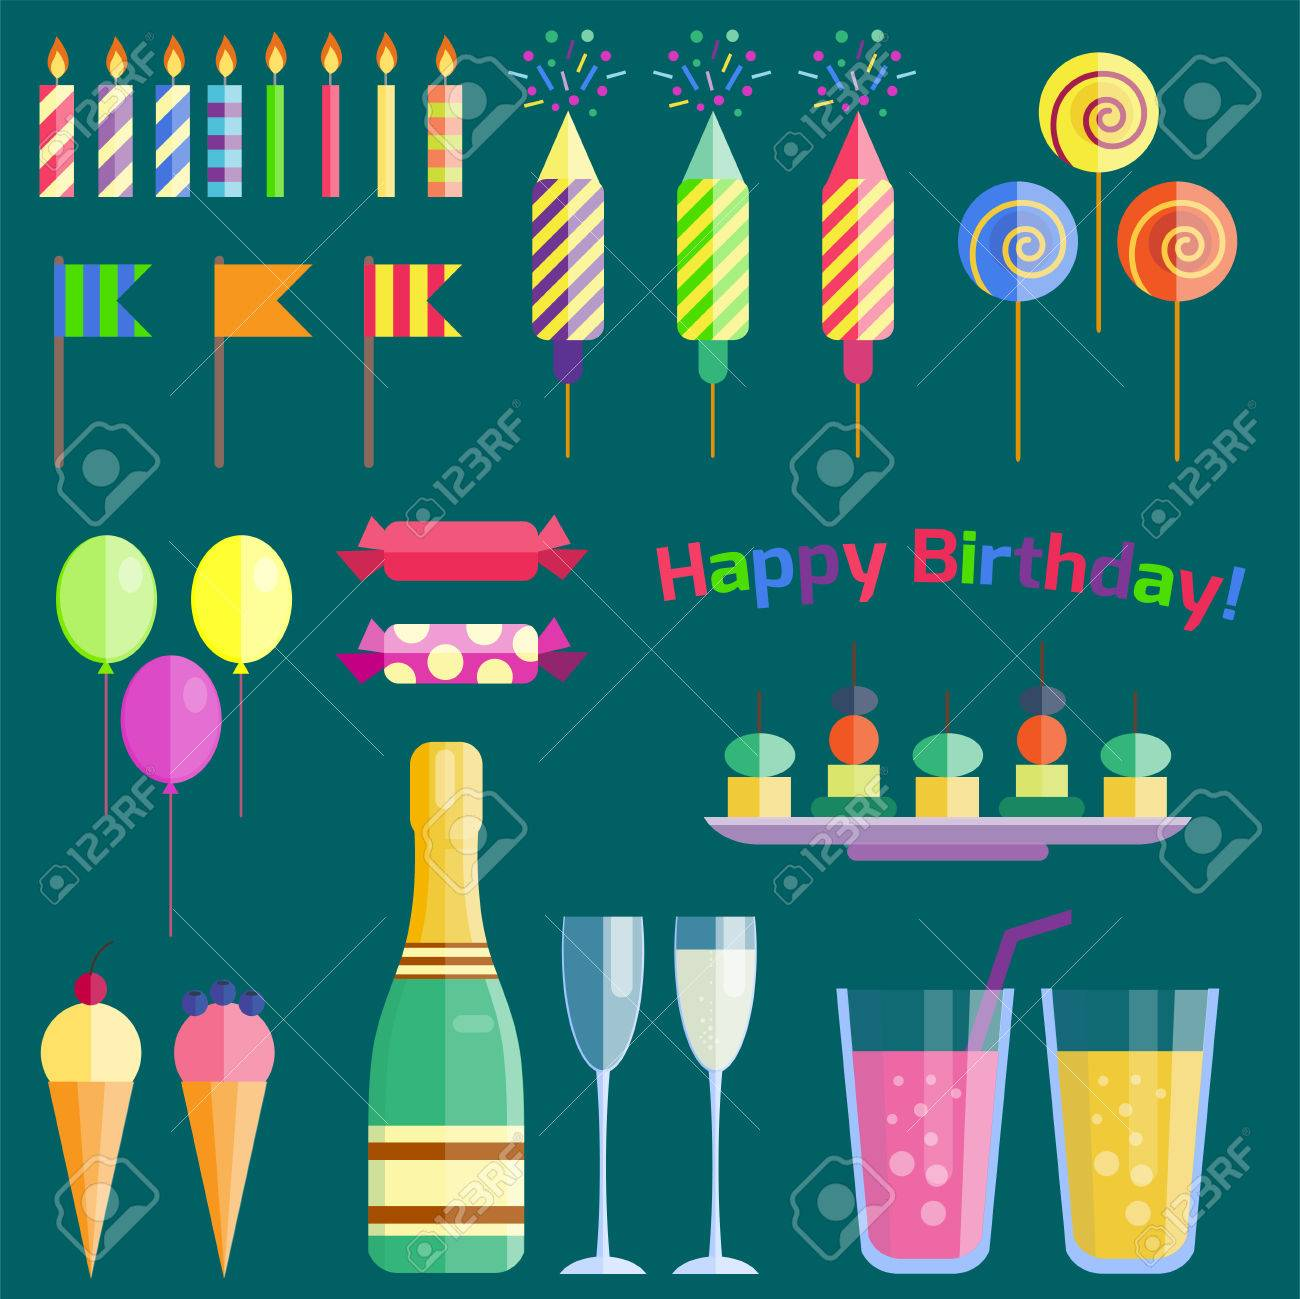 Party Icons Celebration Happy Birthday Surprise Decoration Cocktail Royalty Free Cliparts Vectors And Stock Illustration Image 76555410